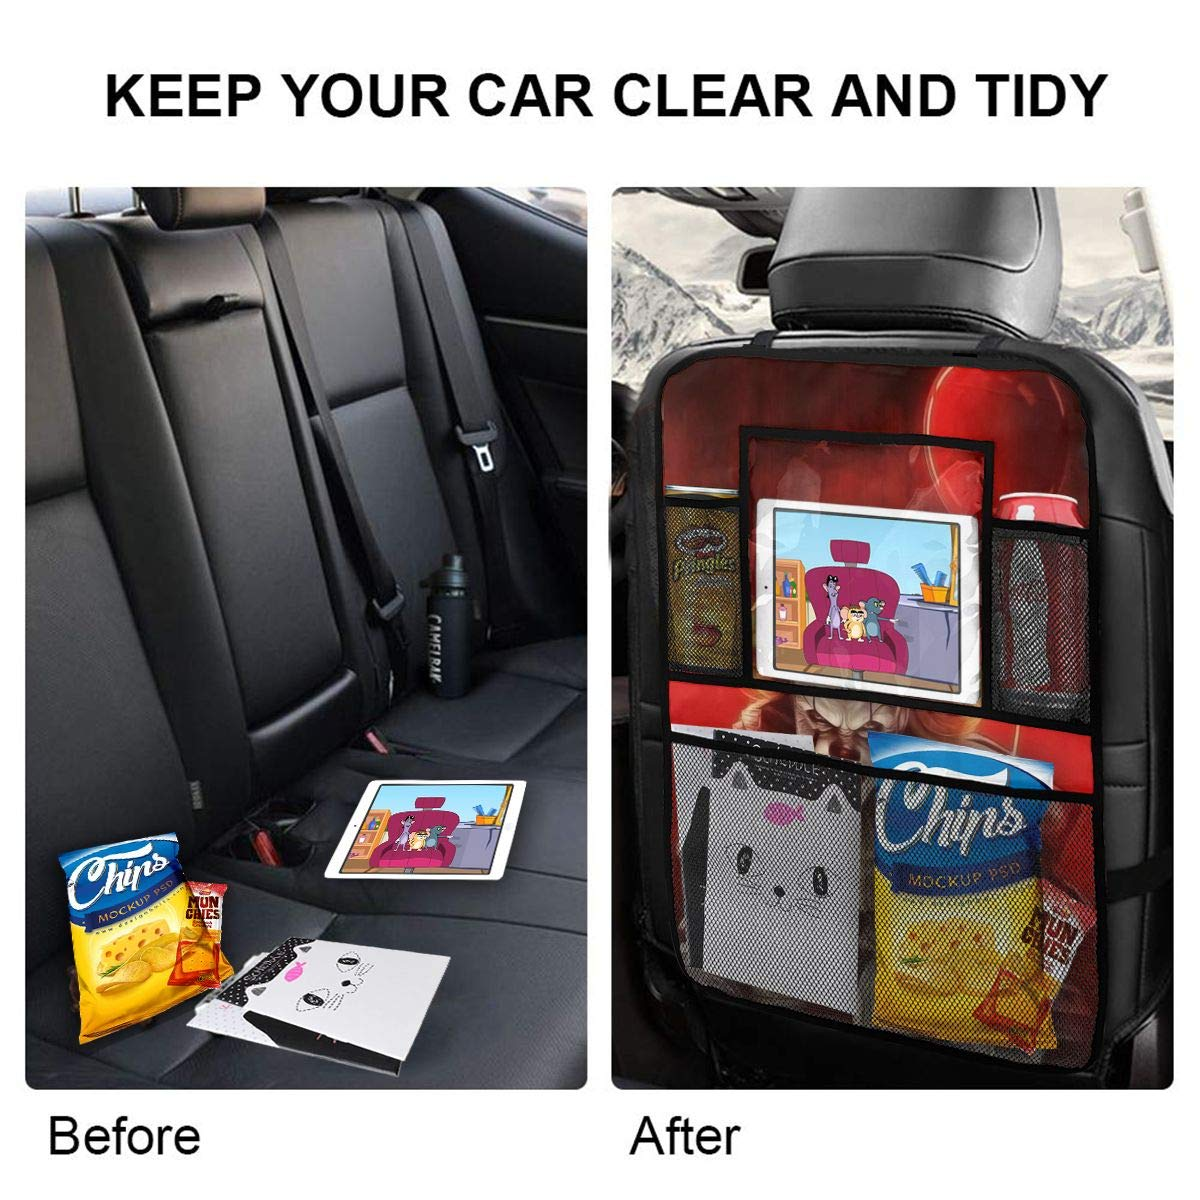 Pennywise with Balloon Car Seat Back Organizer As Travel Storage Accessories/£/¨2 Pack/£